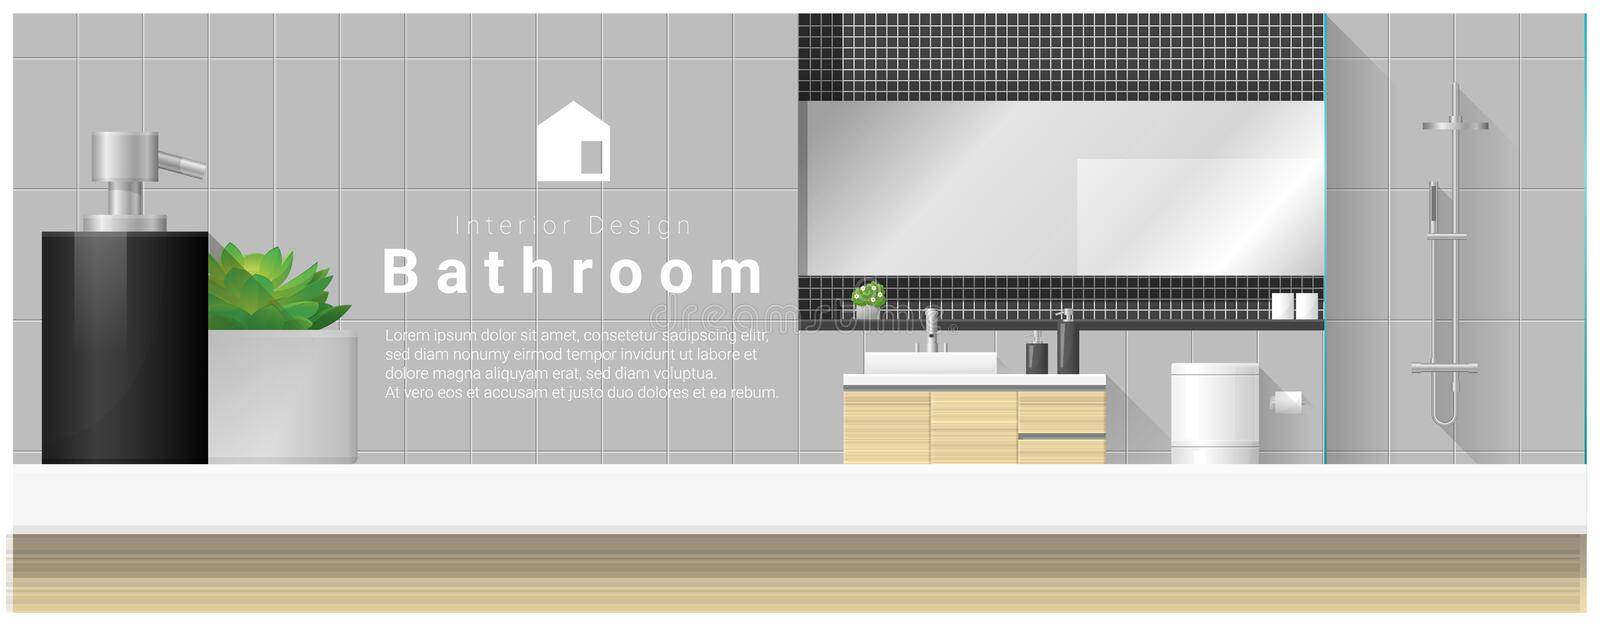 Interior design with table top and Modern bathroom background stock illustration